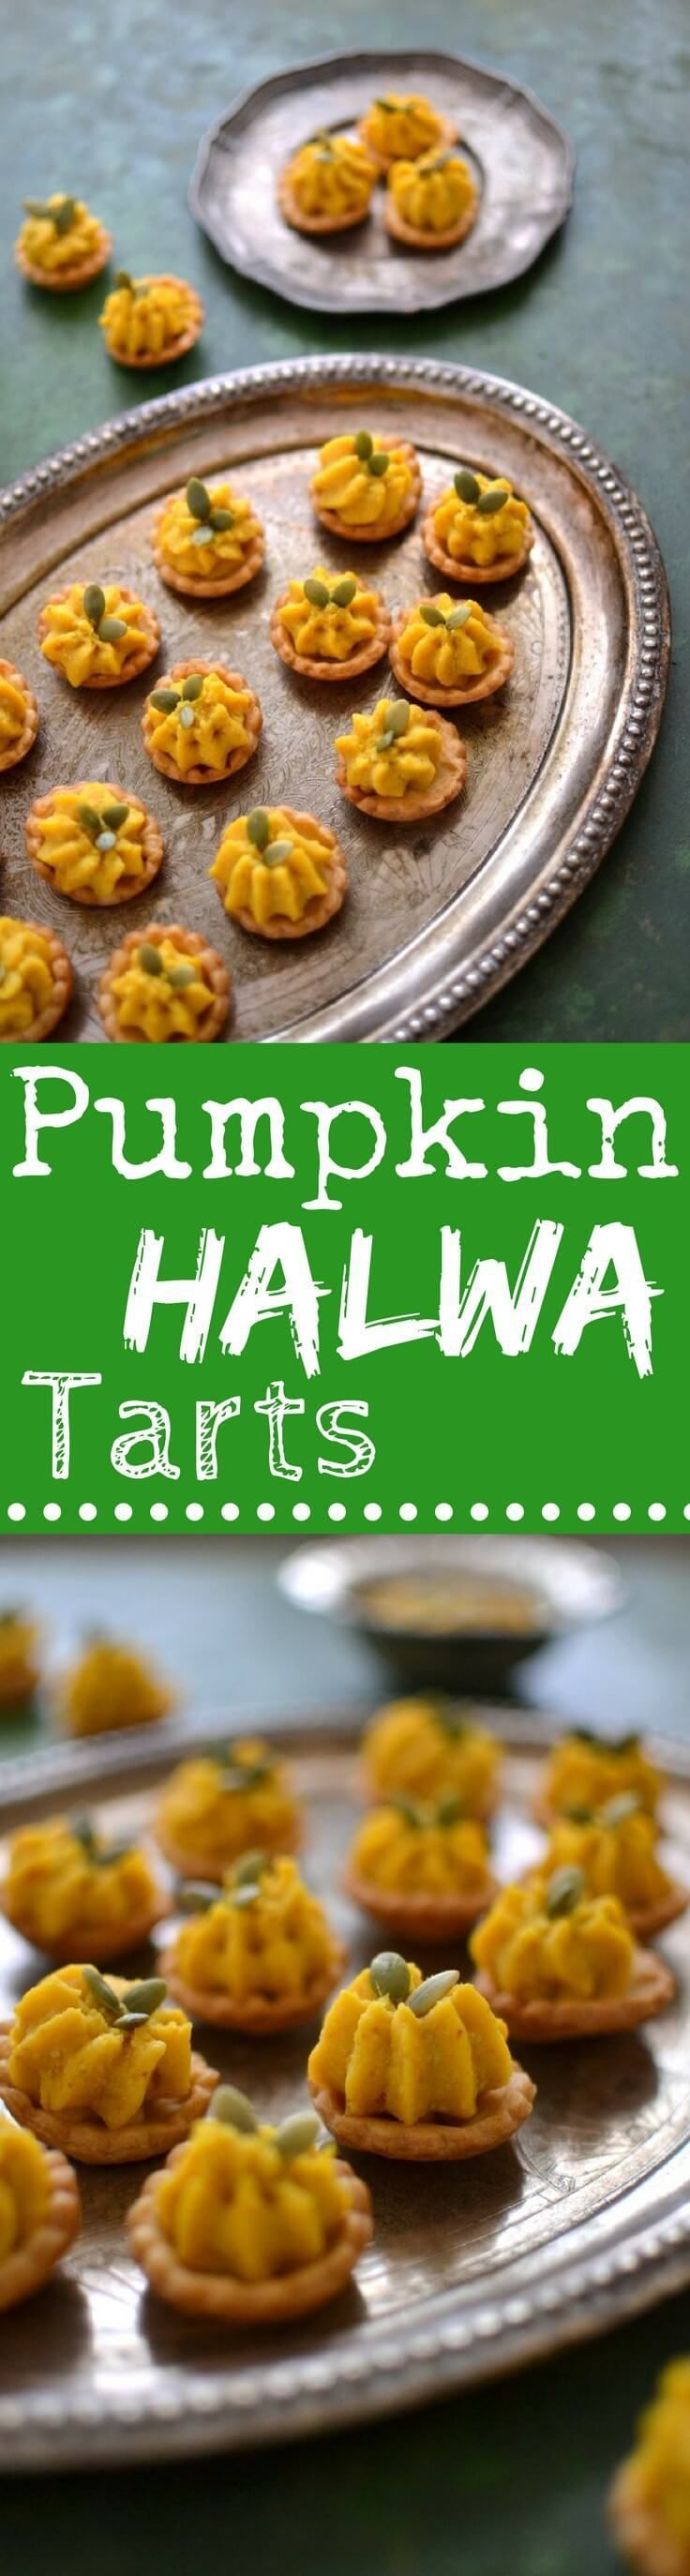 479 best Pumpkin Everything Recipes images on Pinterest